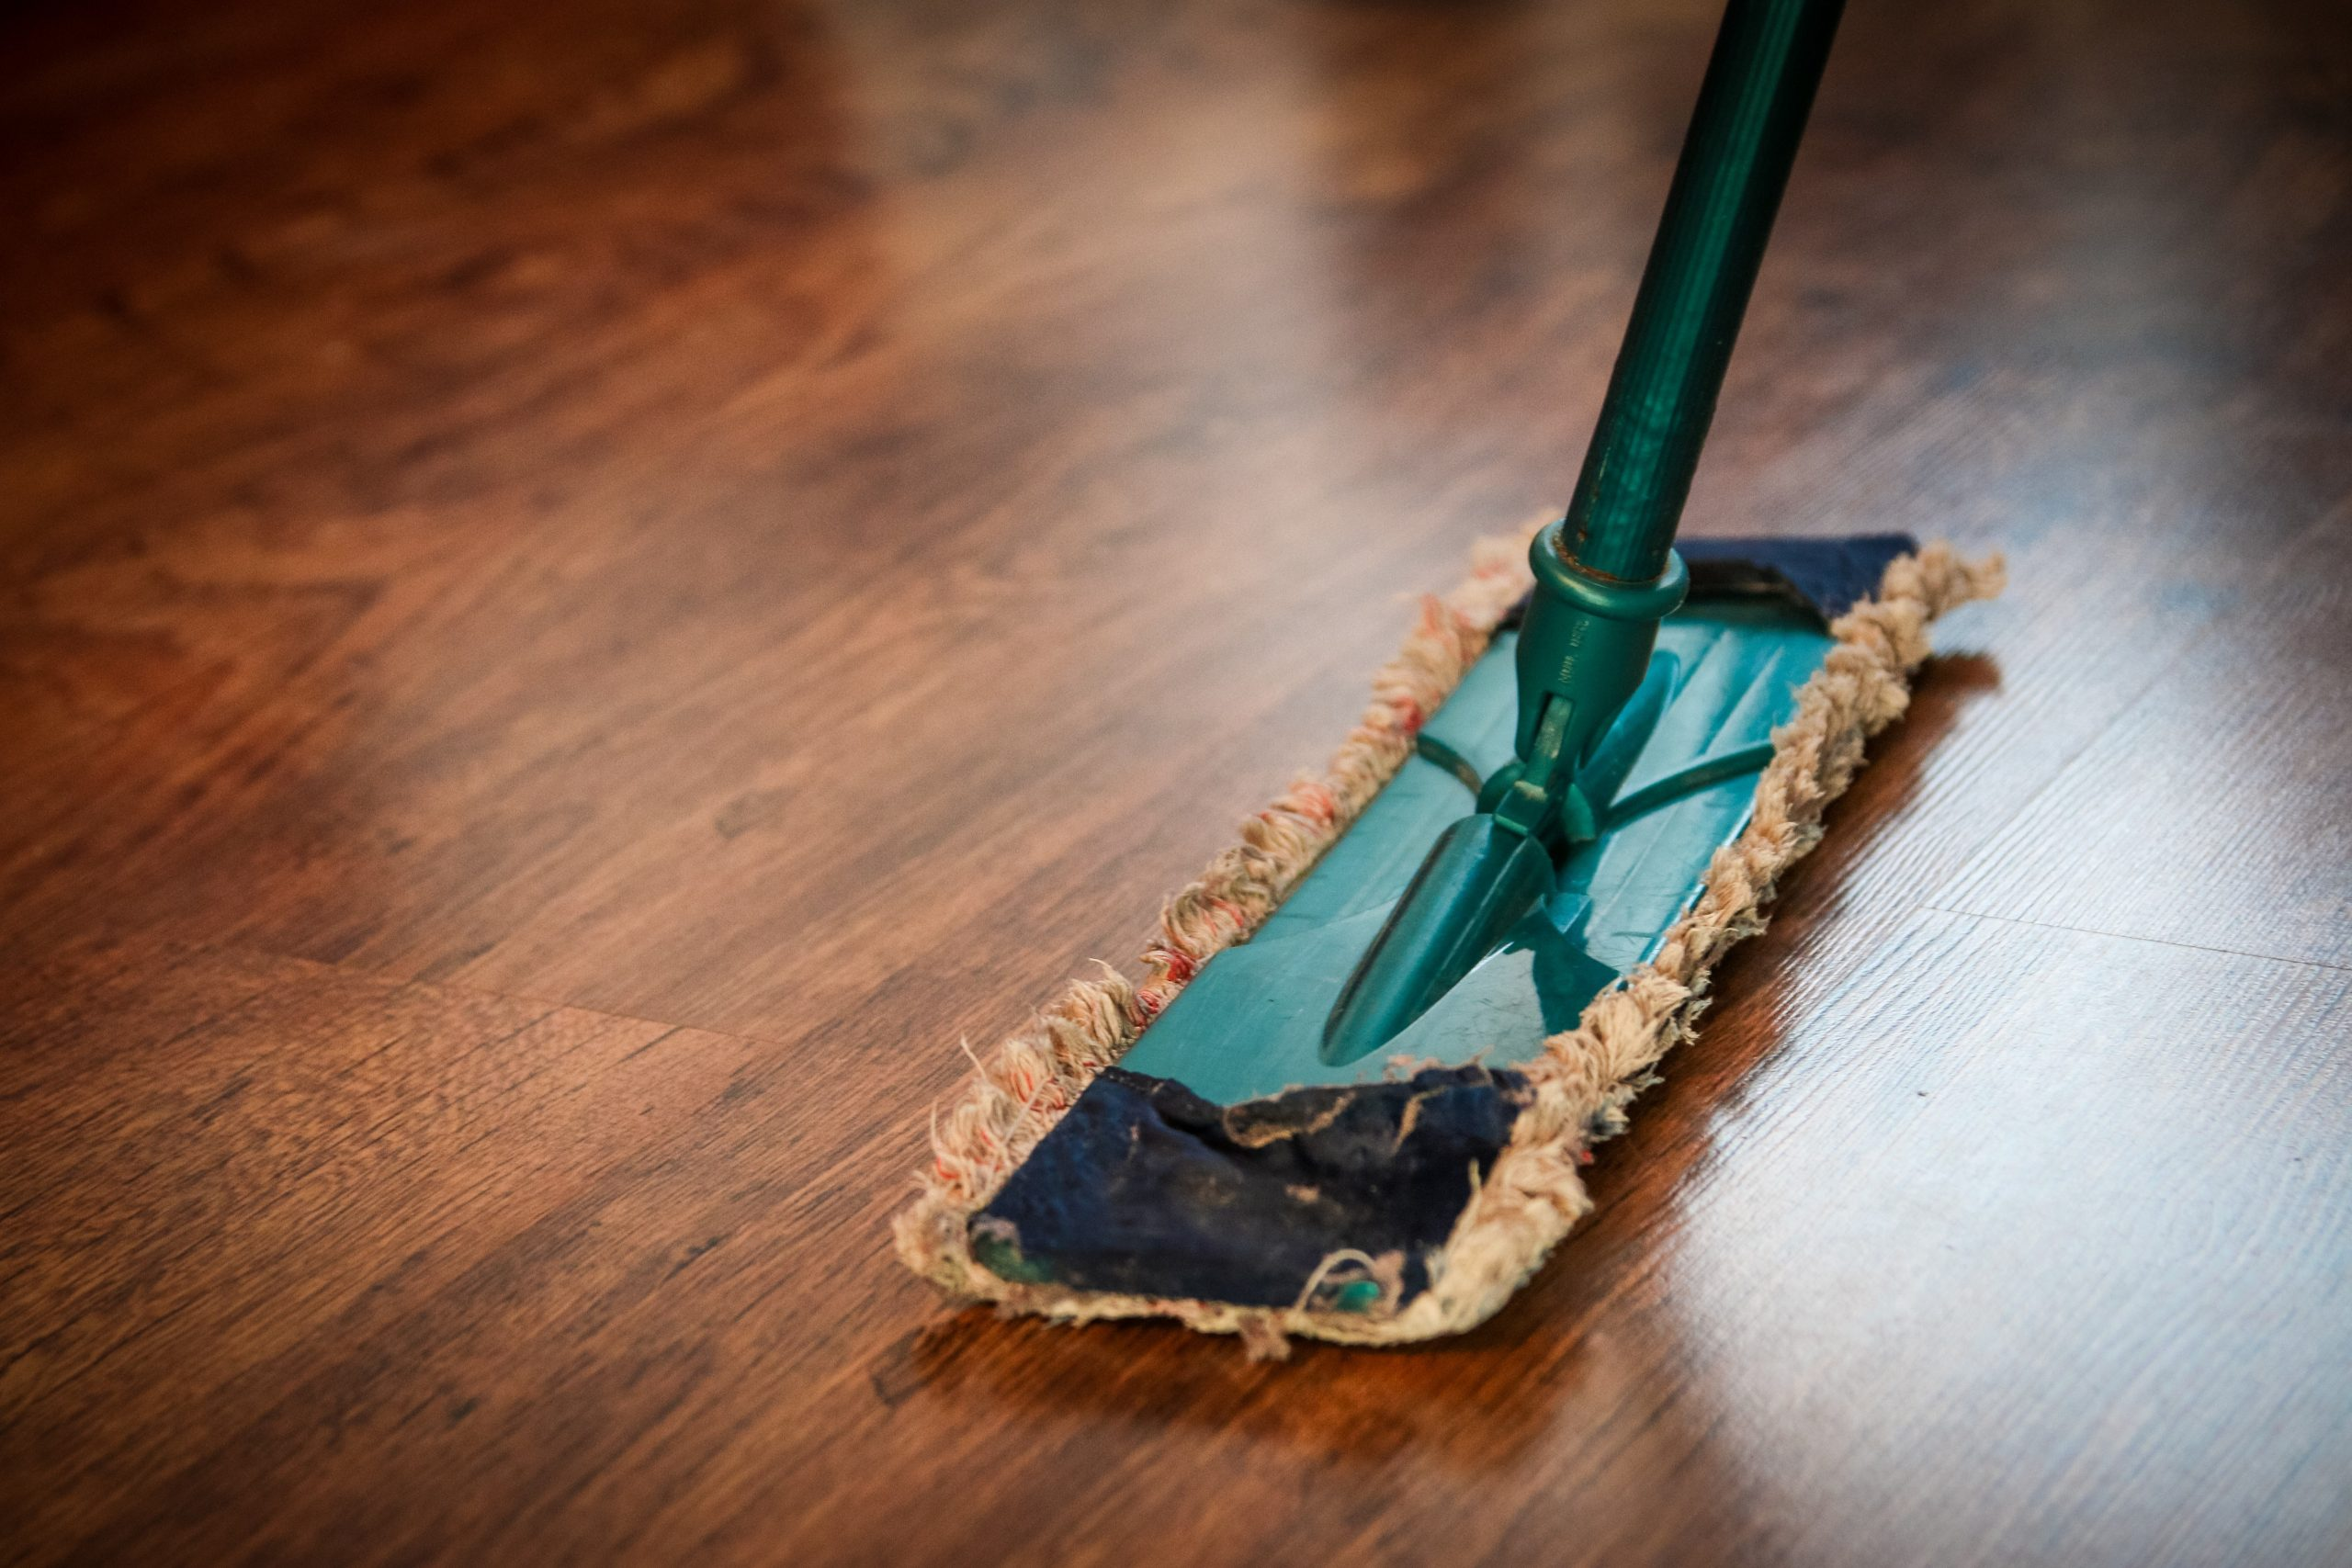 Mop on wood floor; cleaning your house naturally.